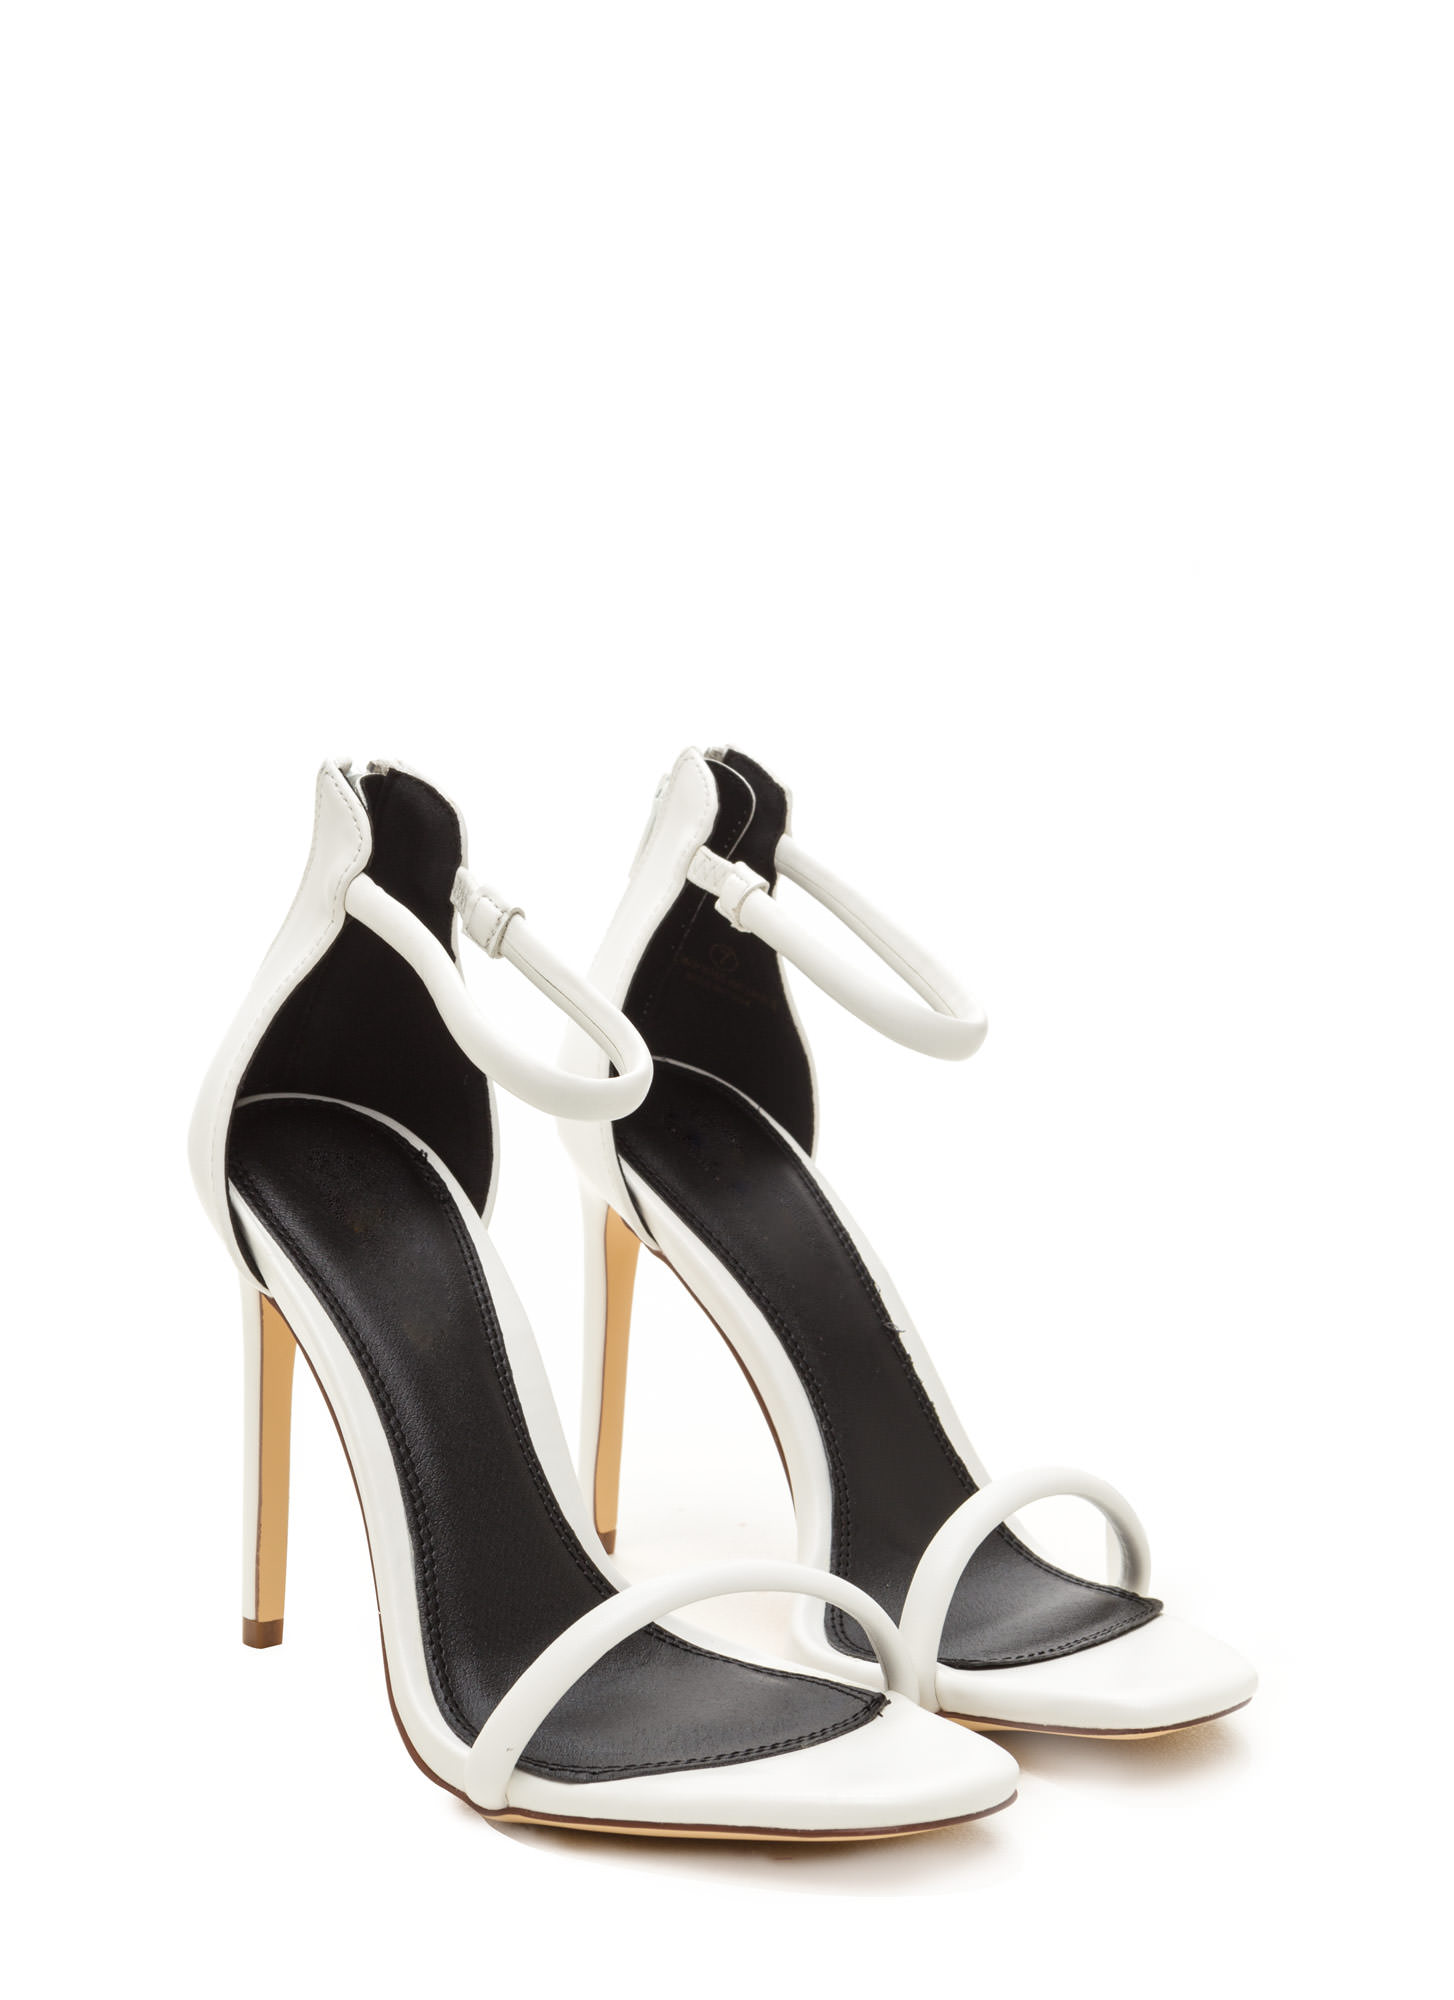 Just One Faux Leather Ankle Strap Heels WHITE